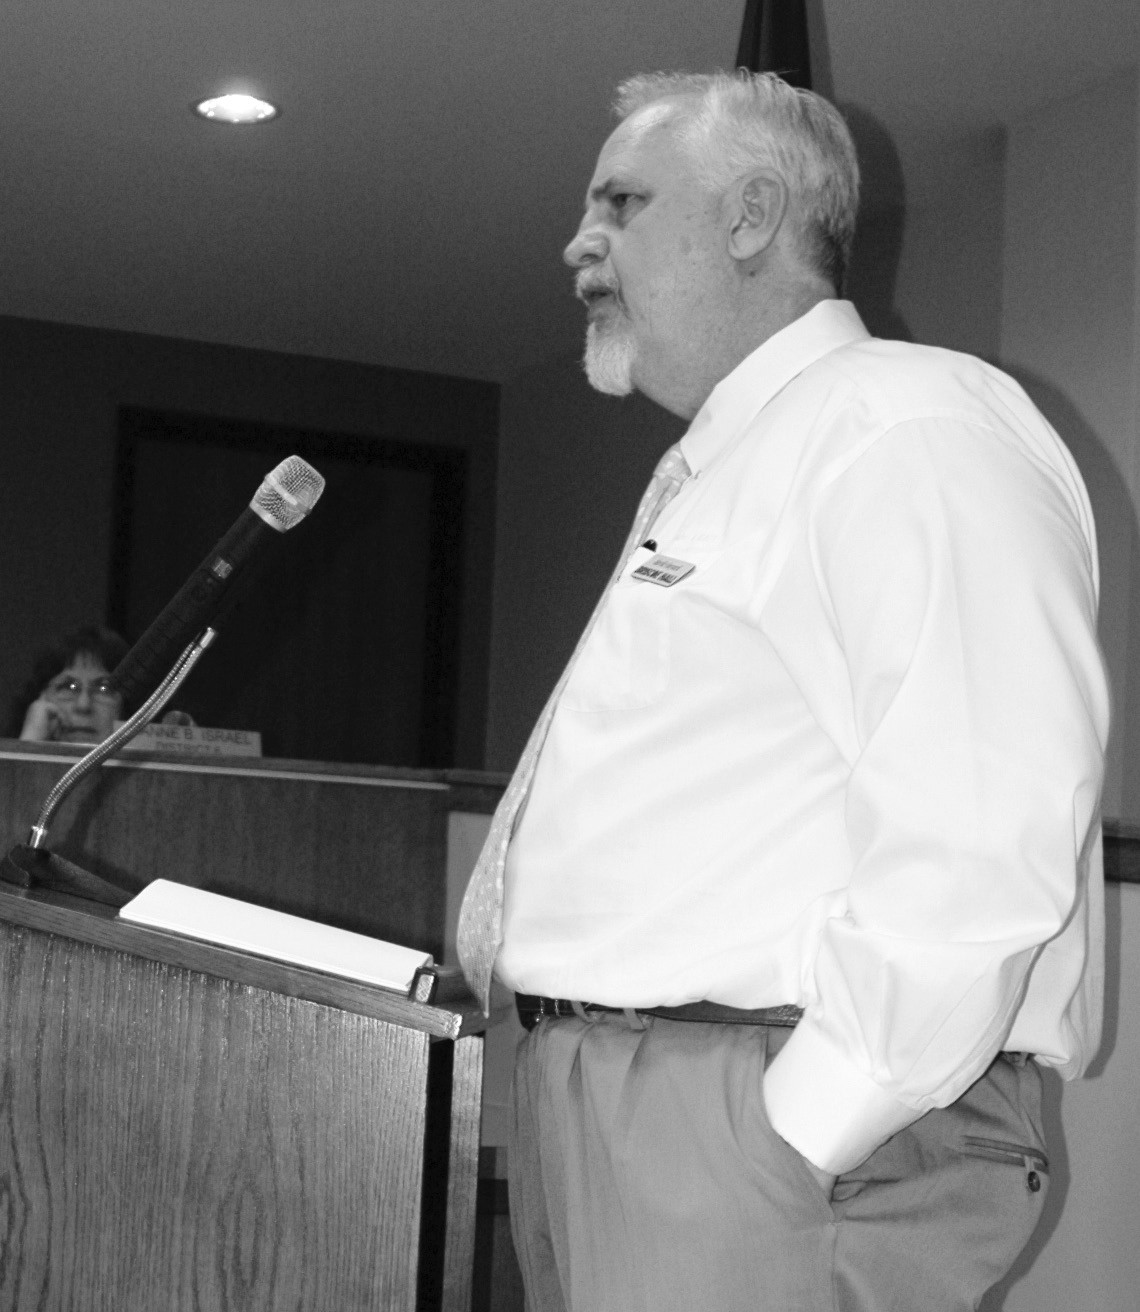 David Vinyard, CEO of Briscoe Hall Advertising, Branding, Interactive, Inc., explained the importance of branding at a workshop he led with the City of Pleasanton Council, staff and citizens last Thursday, August 29.